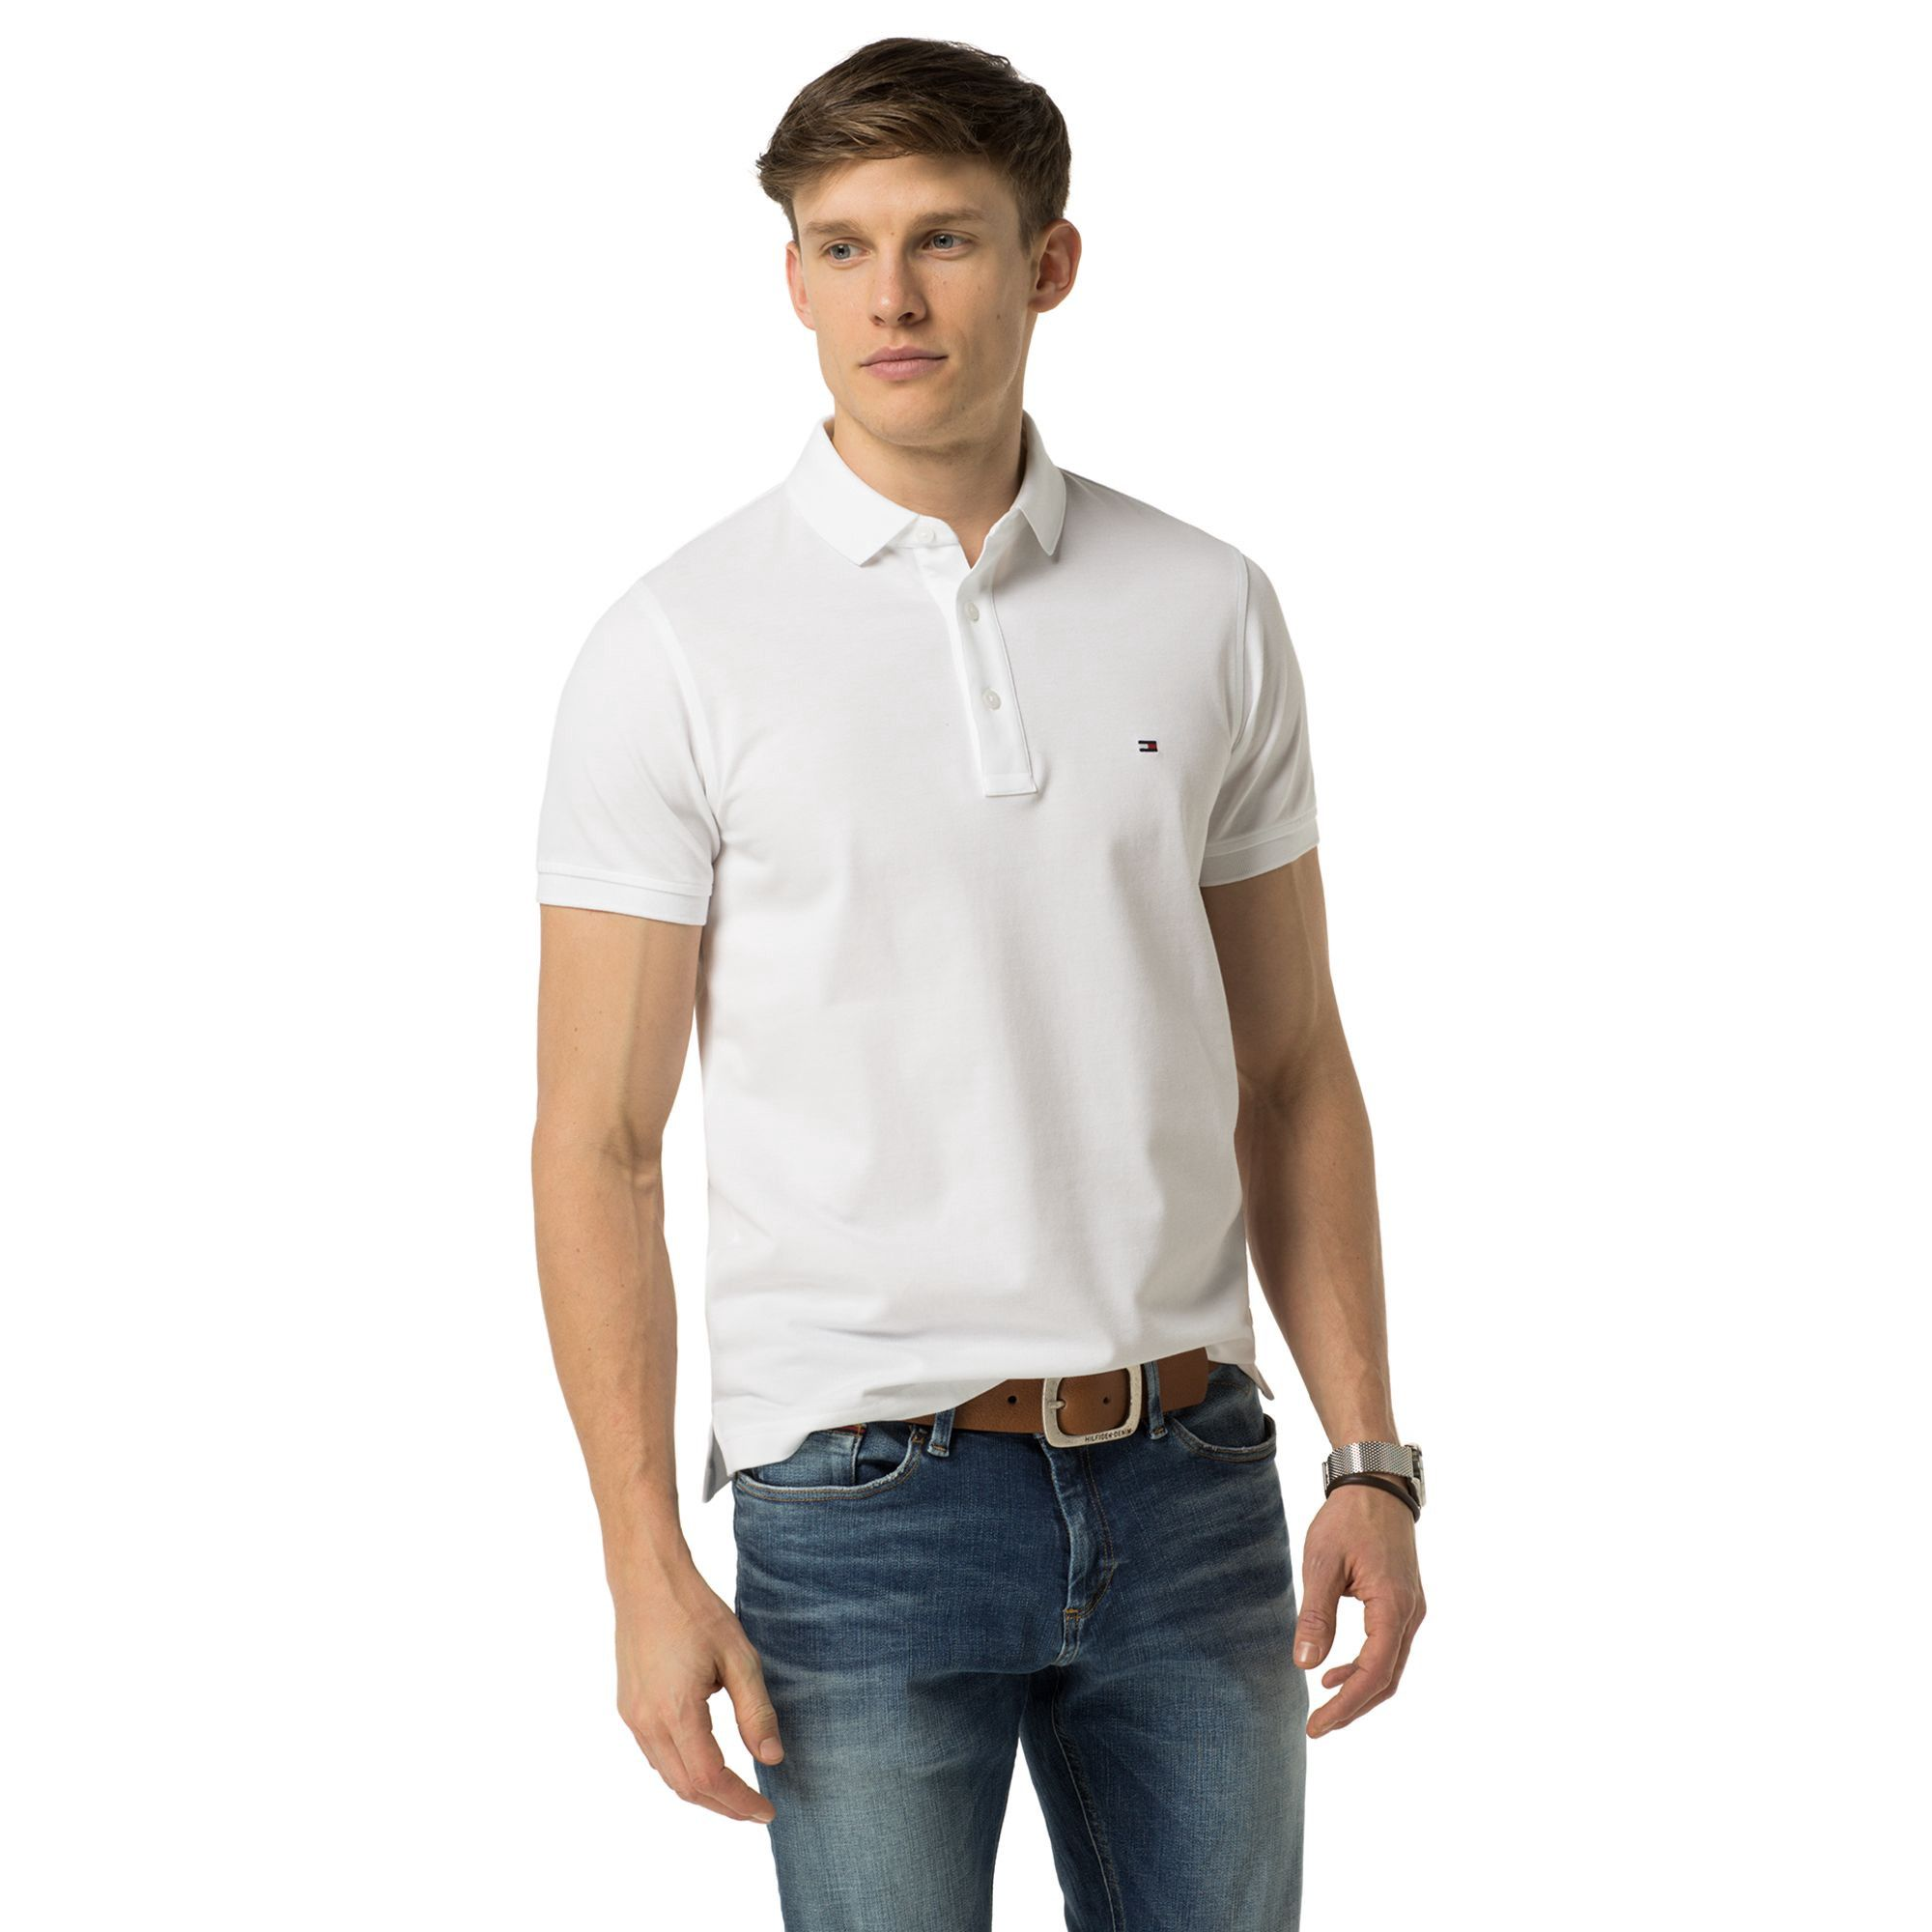 7d11577db TOMMY HILFIGER SLIM FIT LUXURY PIQUE POLO - BRIGHT WHITE. #tommyhilfiger # cloth #